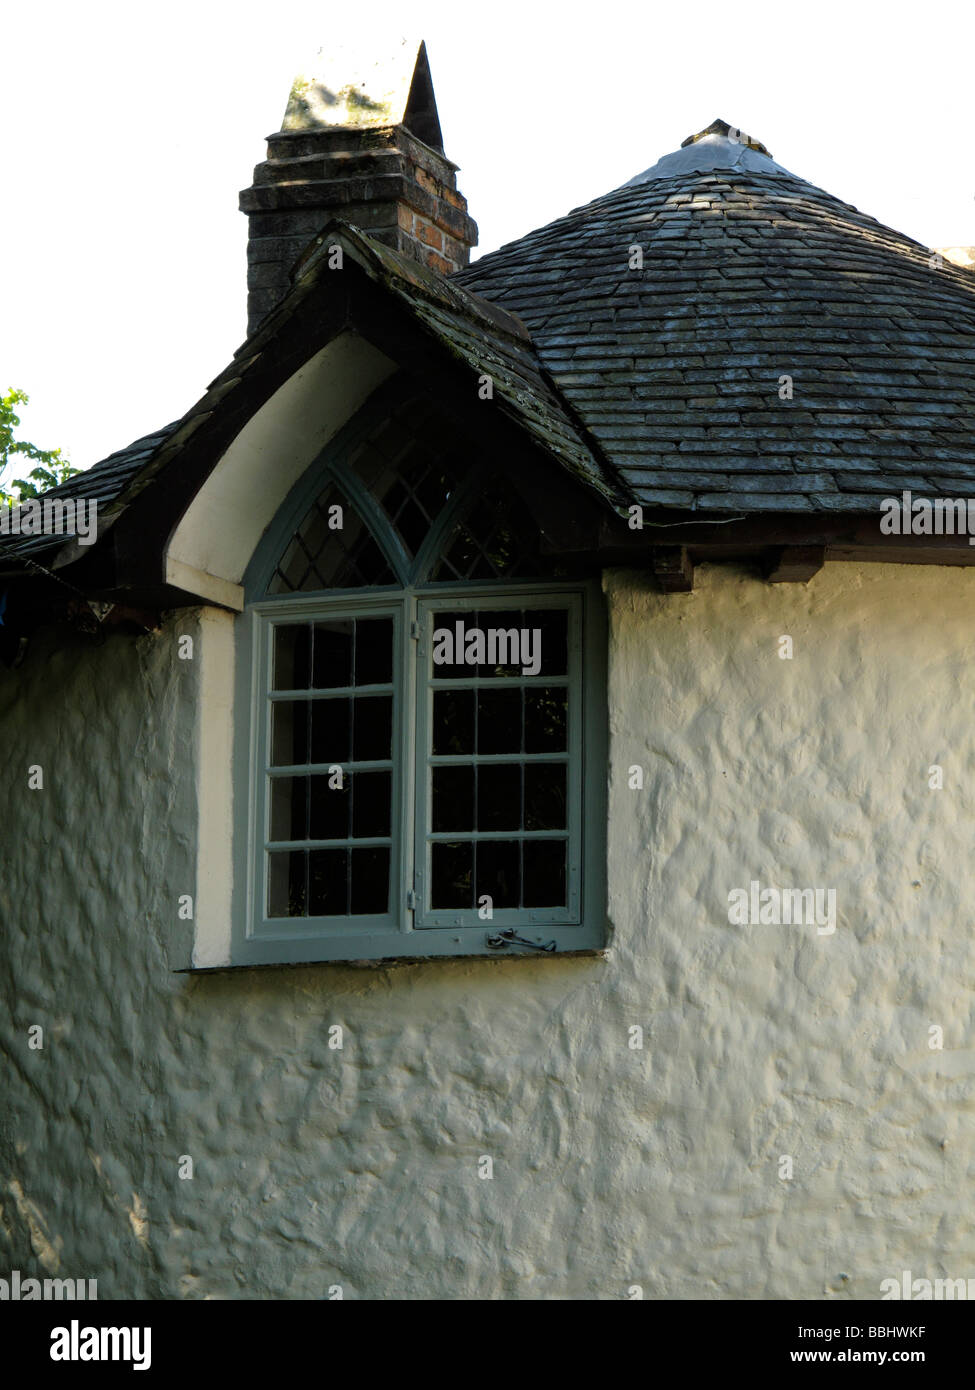 high window in turret - Stock Image